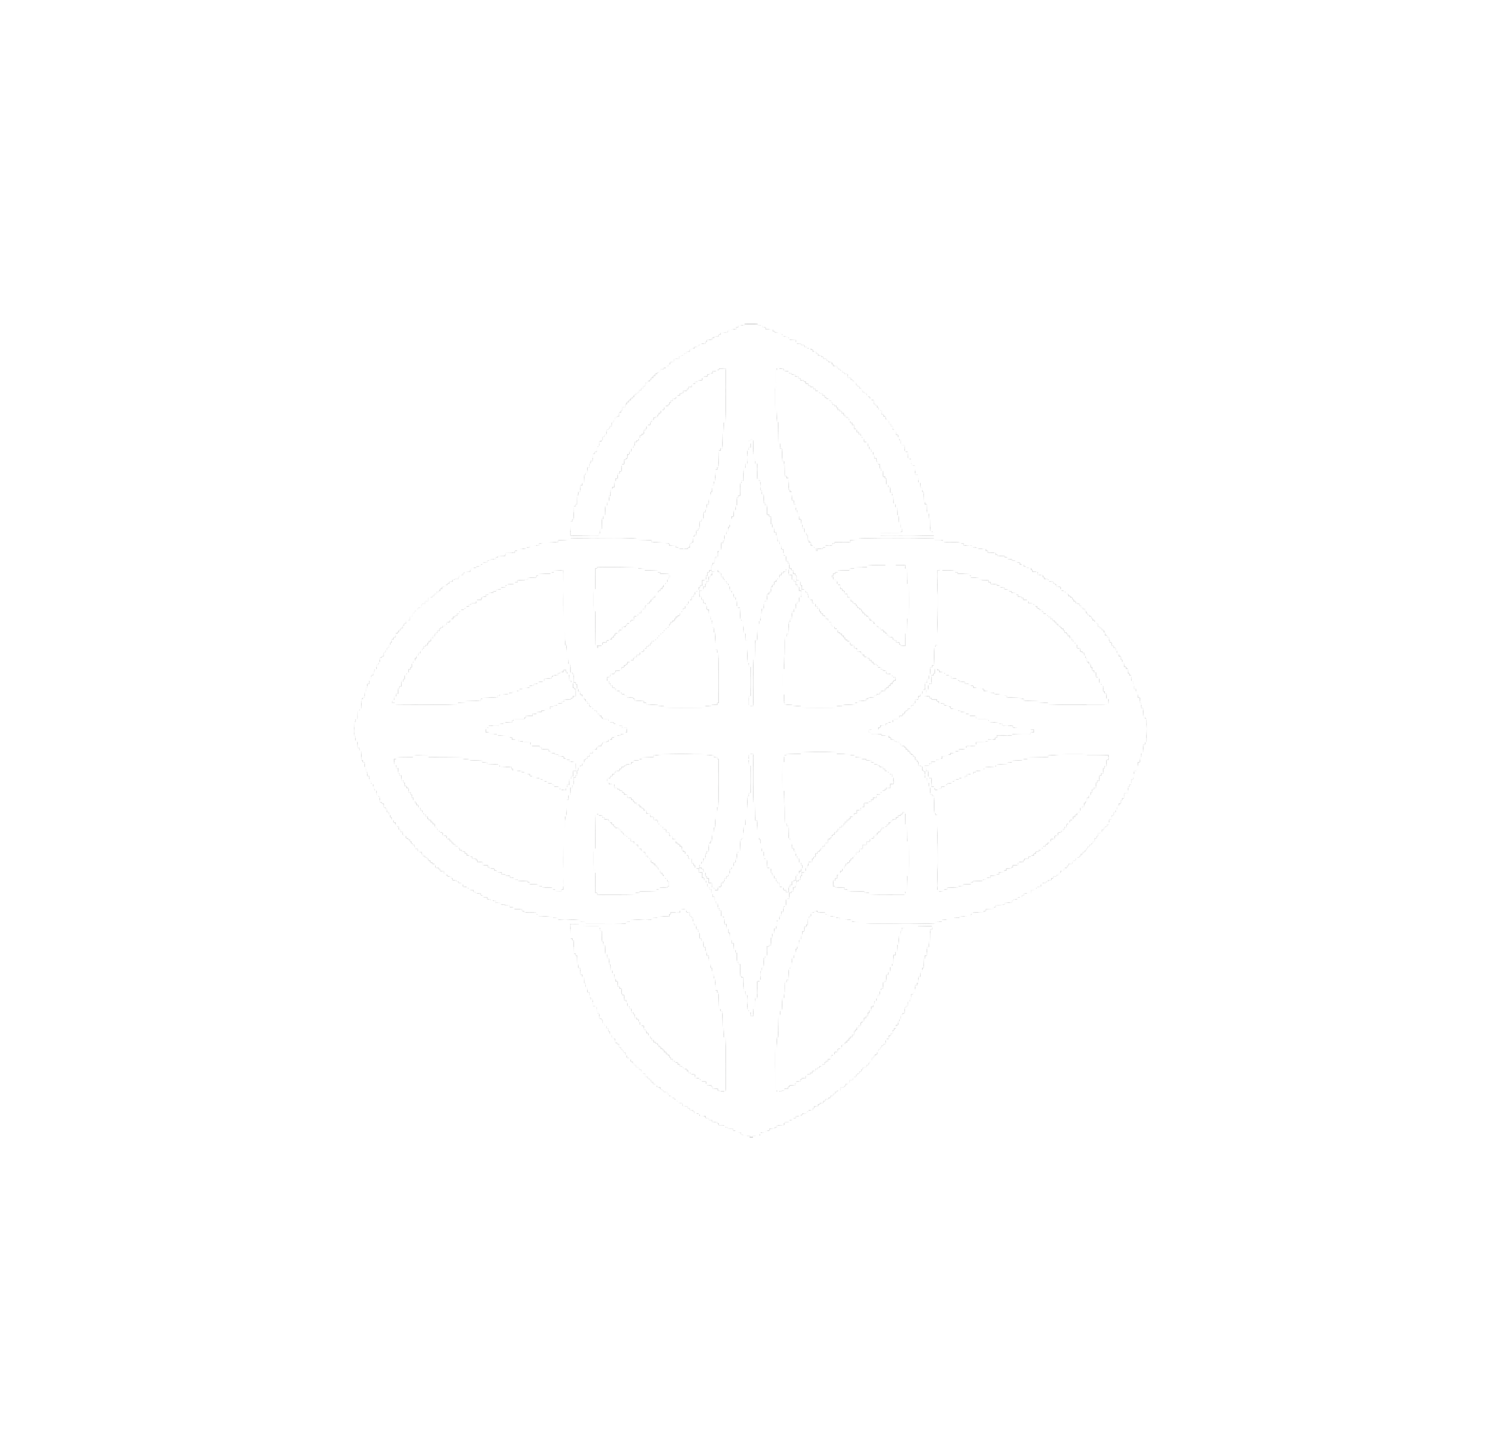 NWI Cryotherapy & Fitness